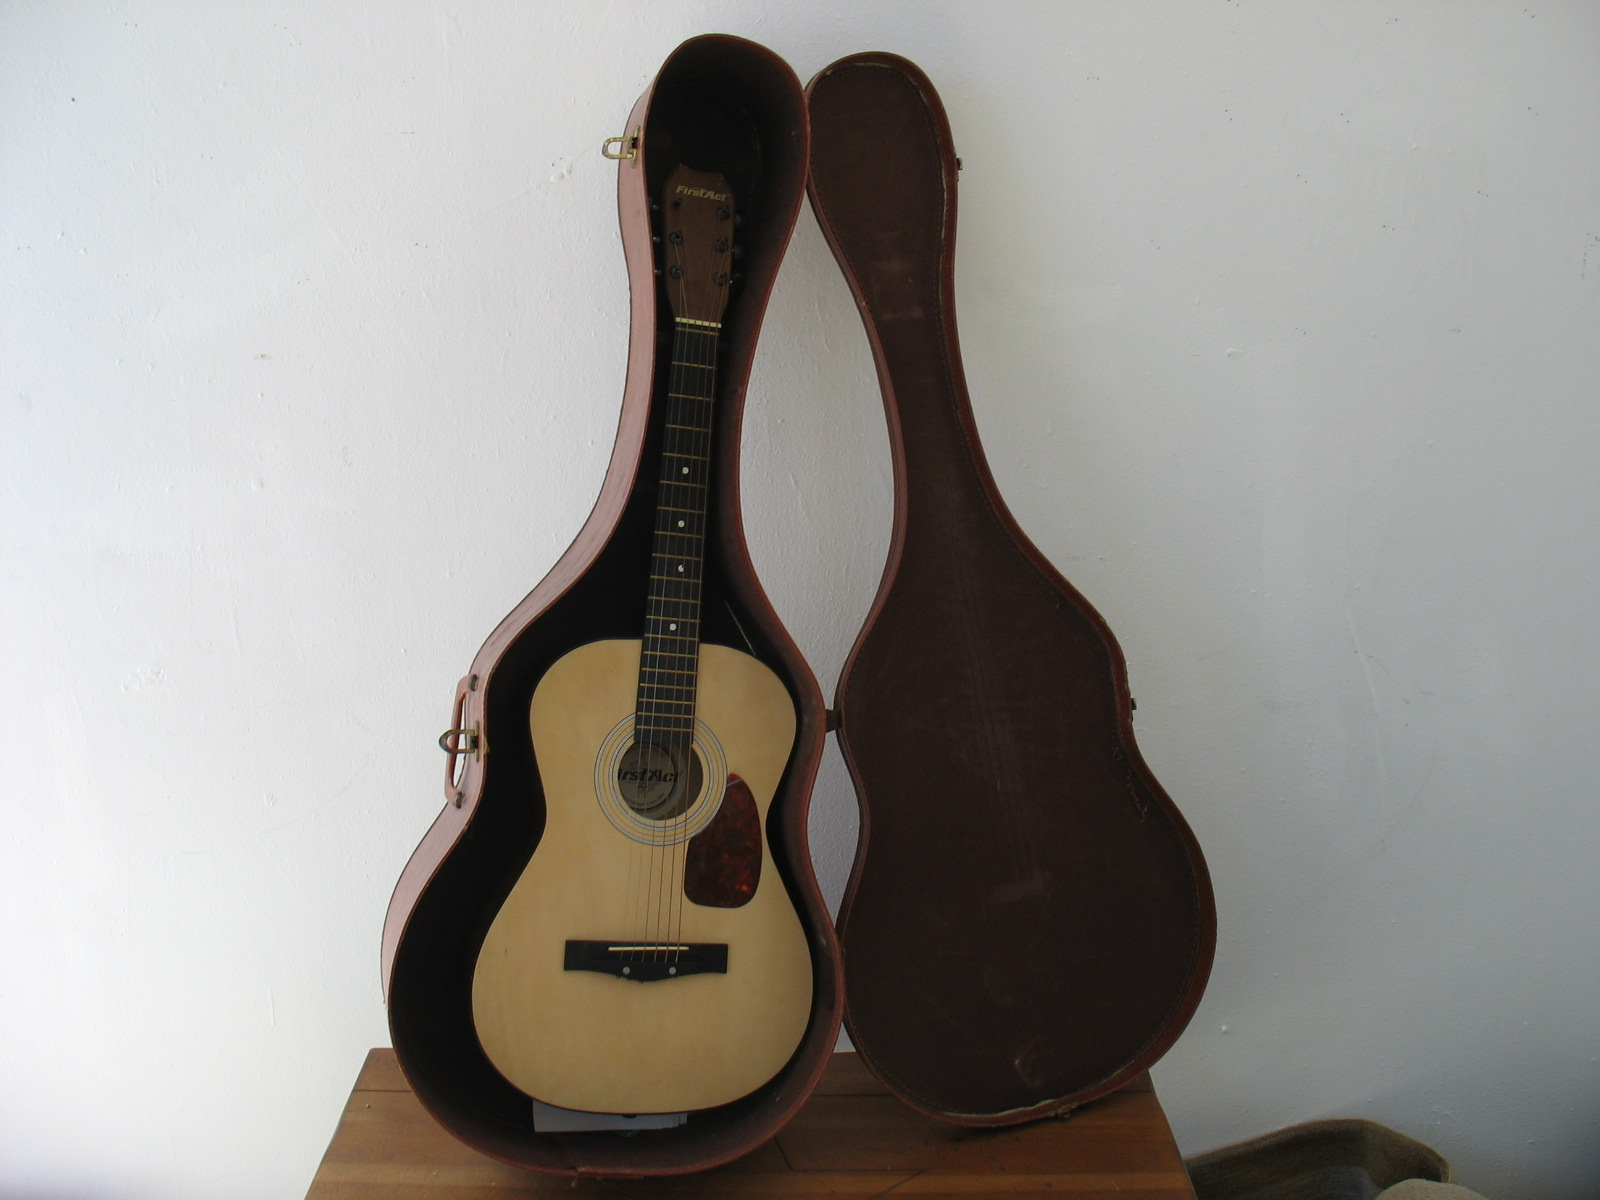 File First Act Parlor Sized Acoustic Guitar Jpg Wikimedia Commons